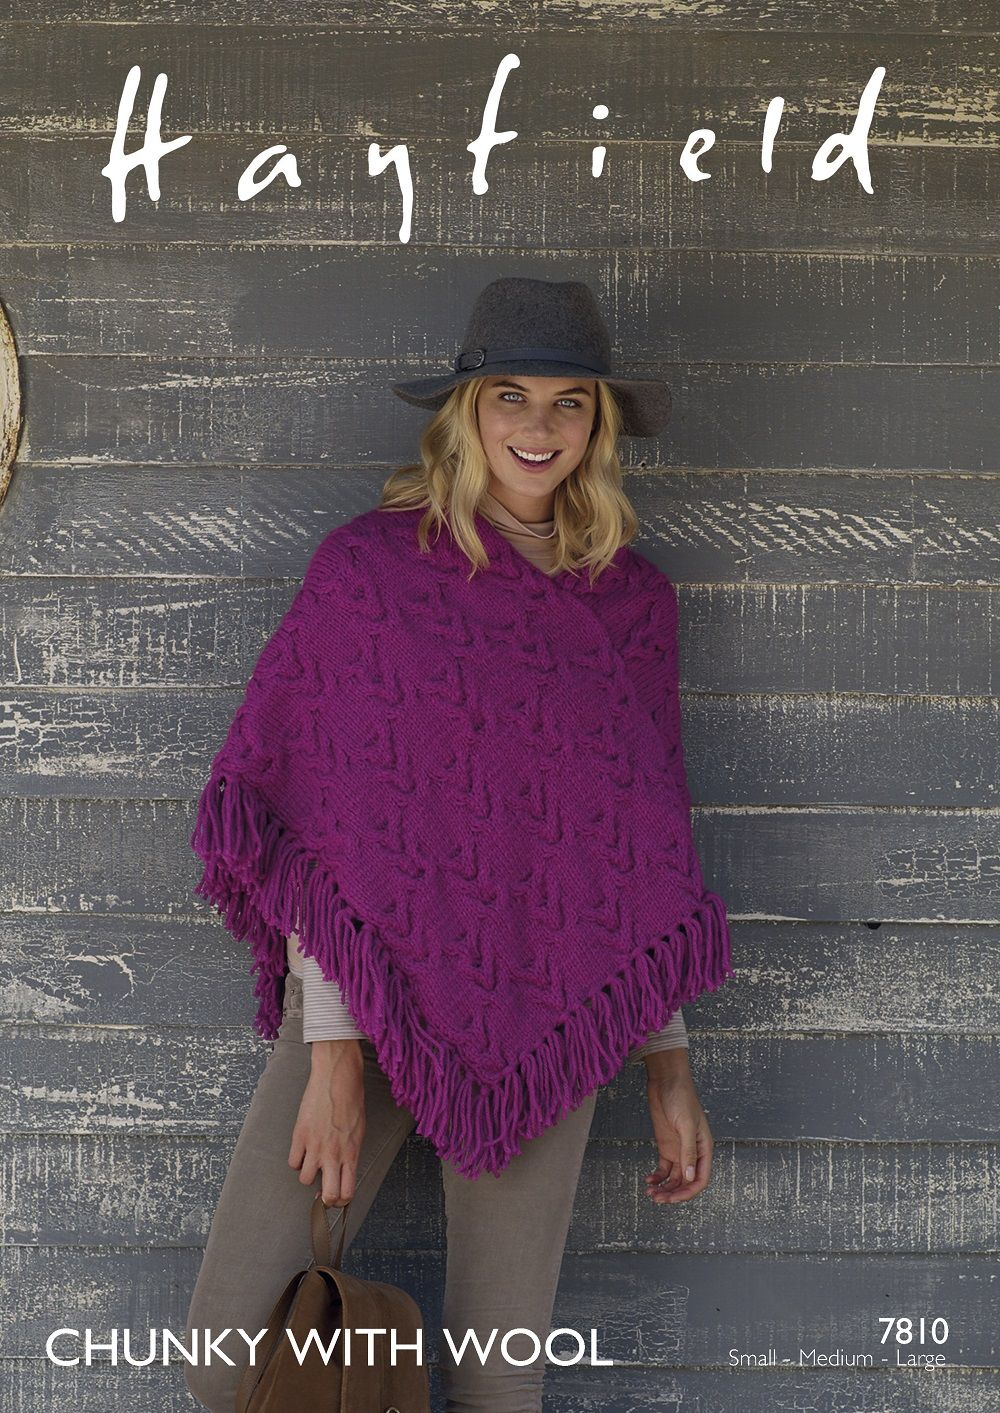 Poncho Knitting Pattern Chunky Hayfield Ladies Poncho Knitting Pattern In Chunky With Wool 7810p Pdf